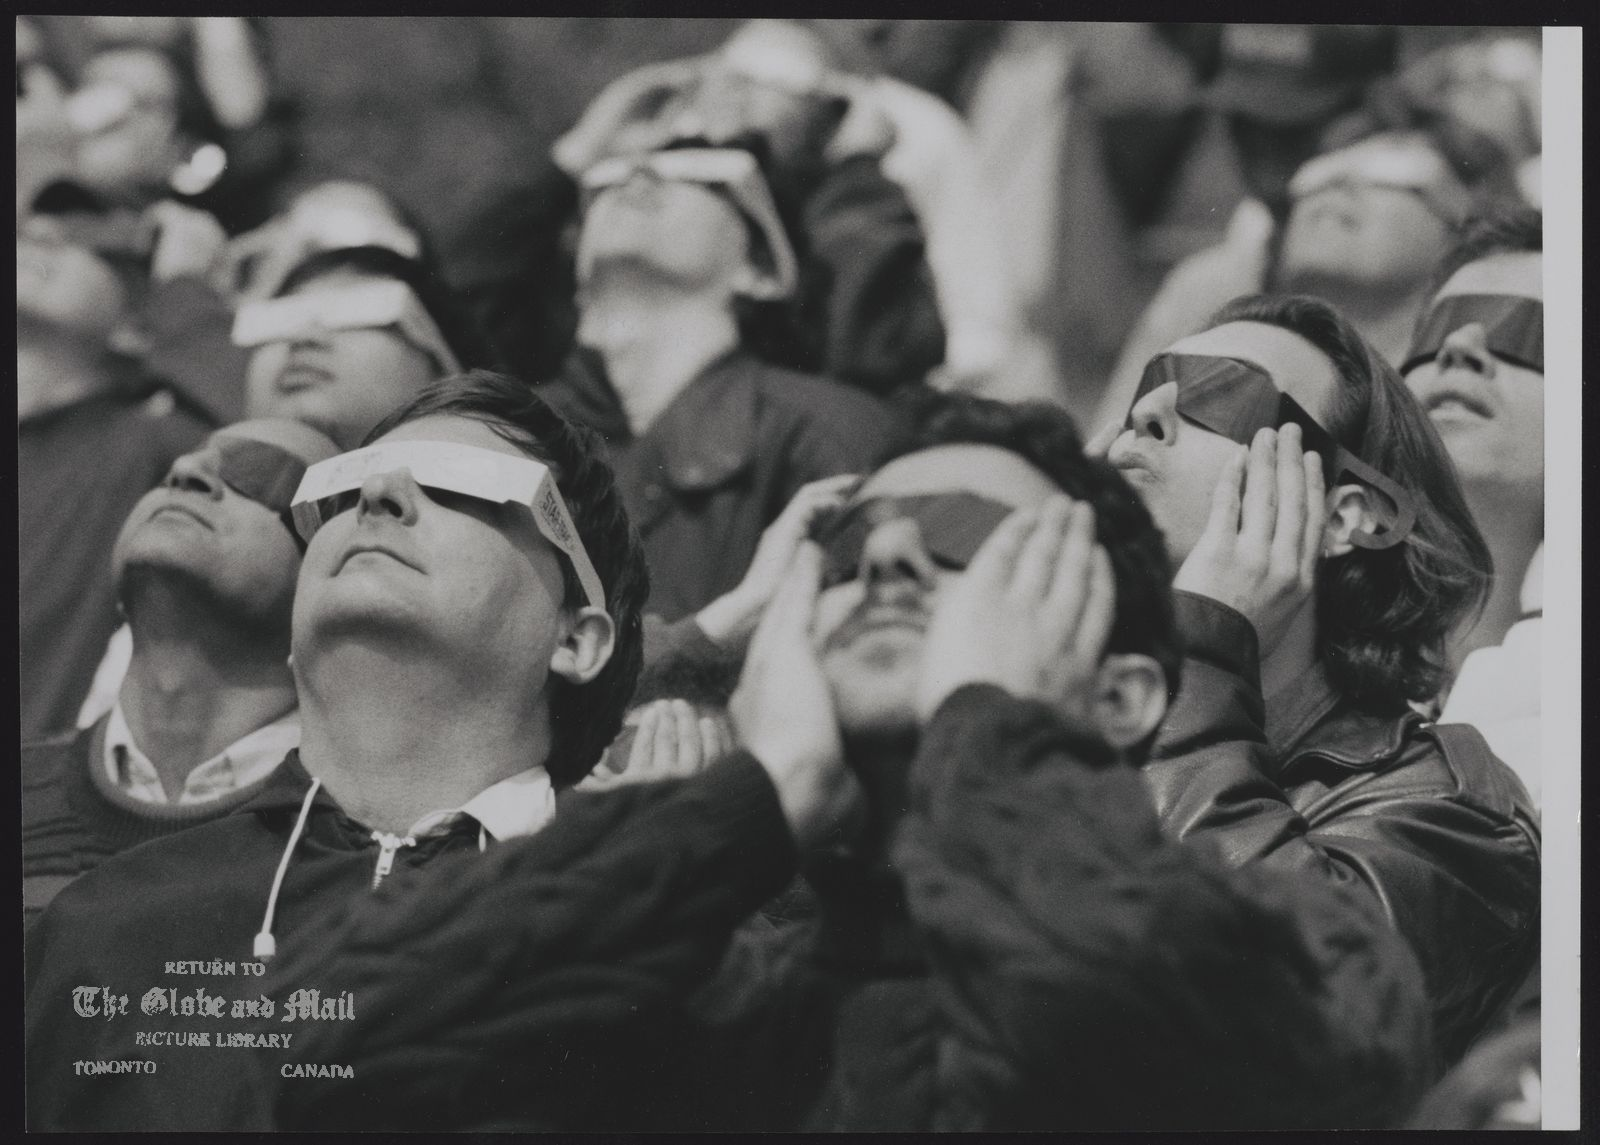 ECLIPSES TORONTO -- ANNULAR ECLIPSE OF THE SUN. VIEWERS AT THE ONTARIO SCIENCE CENTRE USED SPECIAL GLASSES TO VIEW THE EVENT.